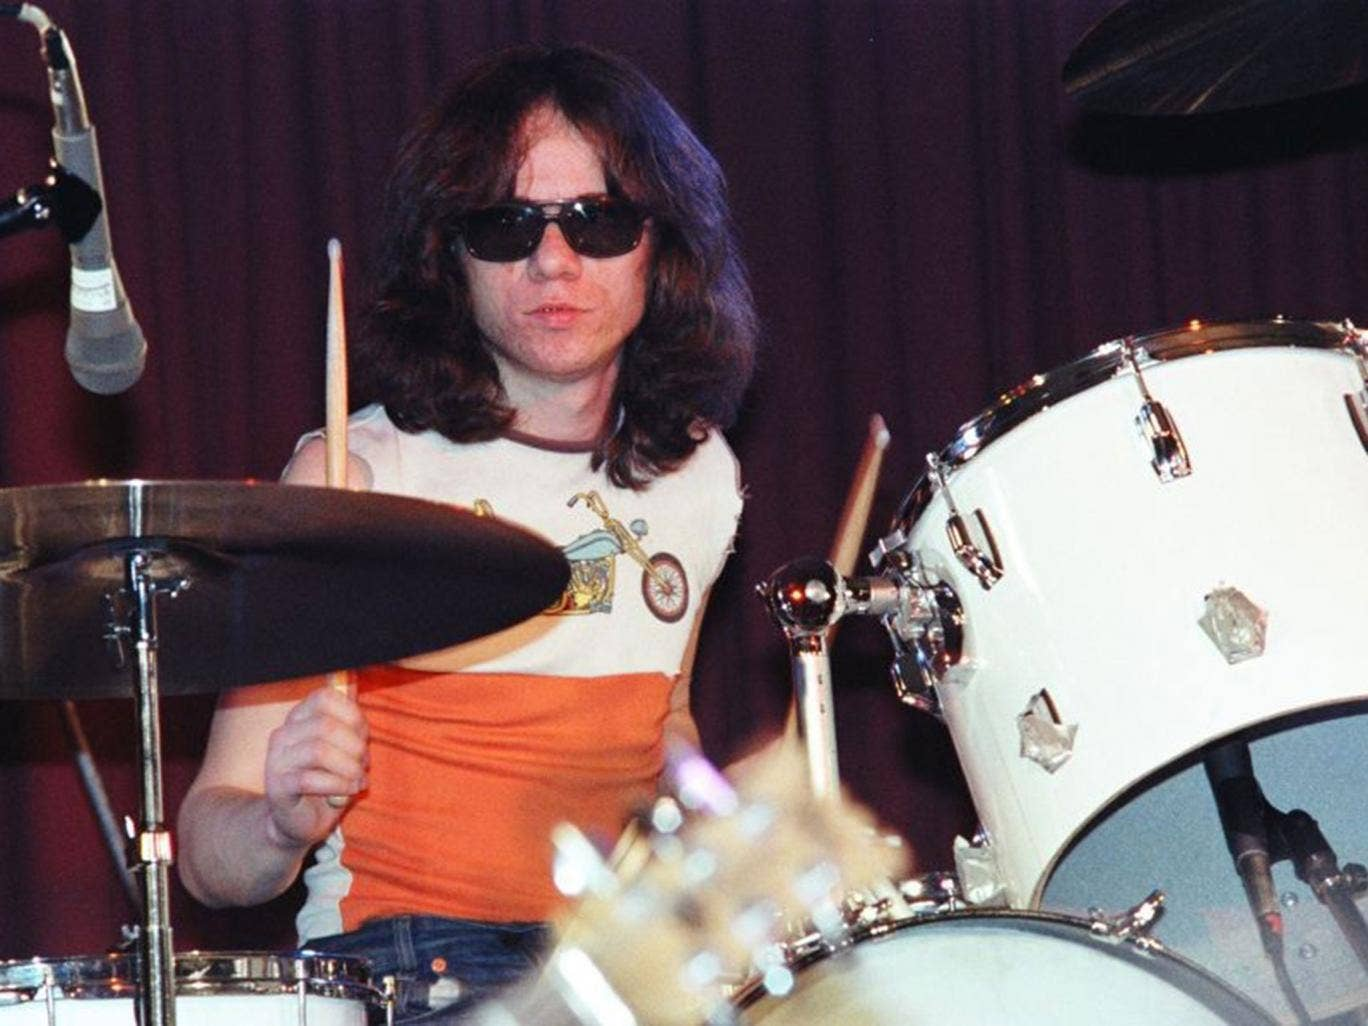 Tommy Ramone performing  at The Old Waldorf Nightclub in 1978 in San Francisco, California.